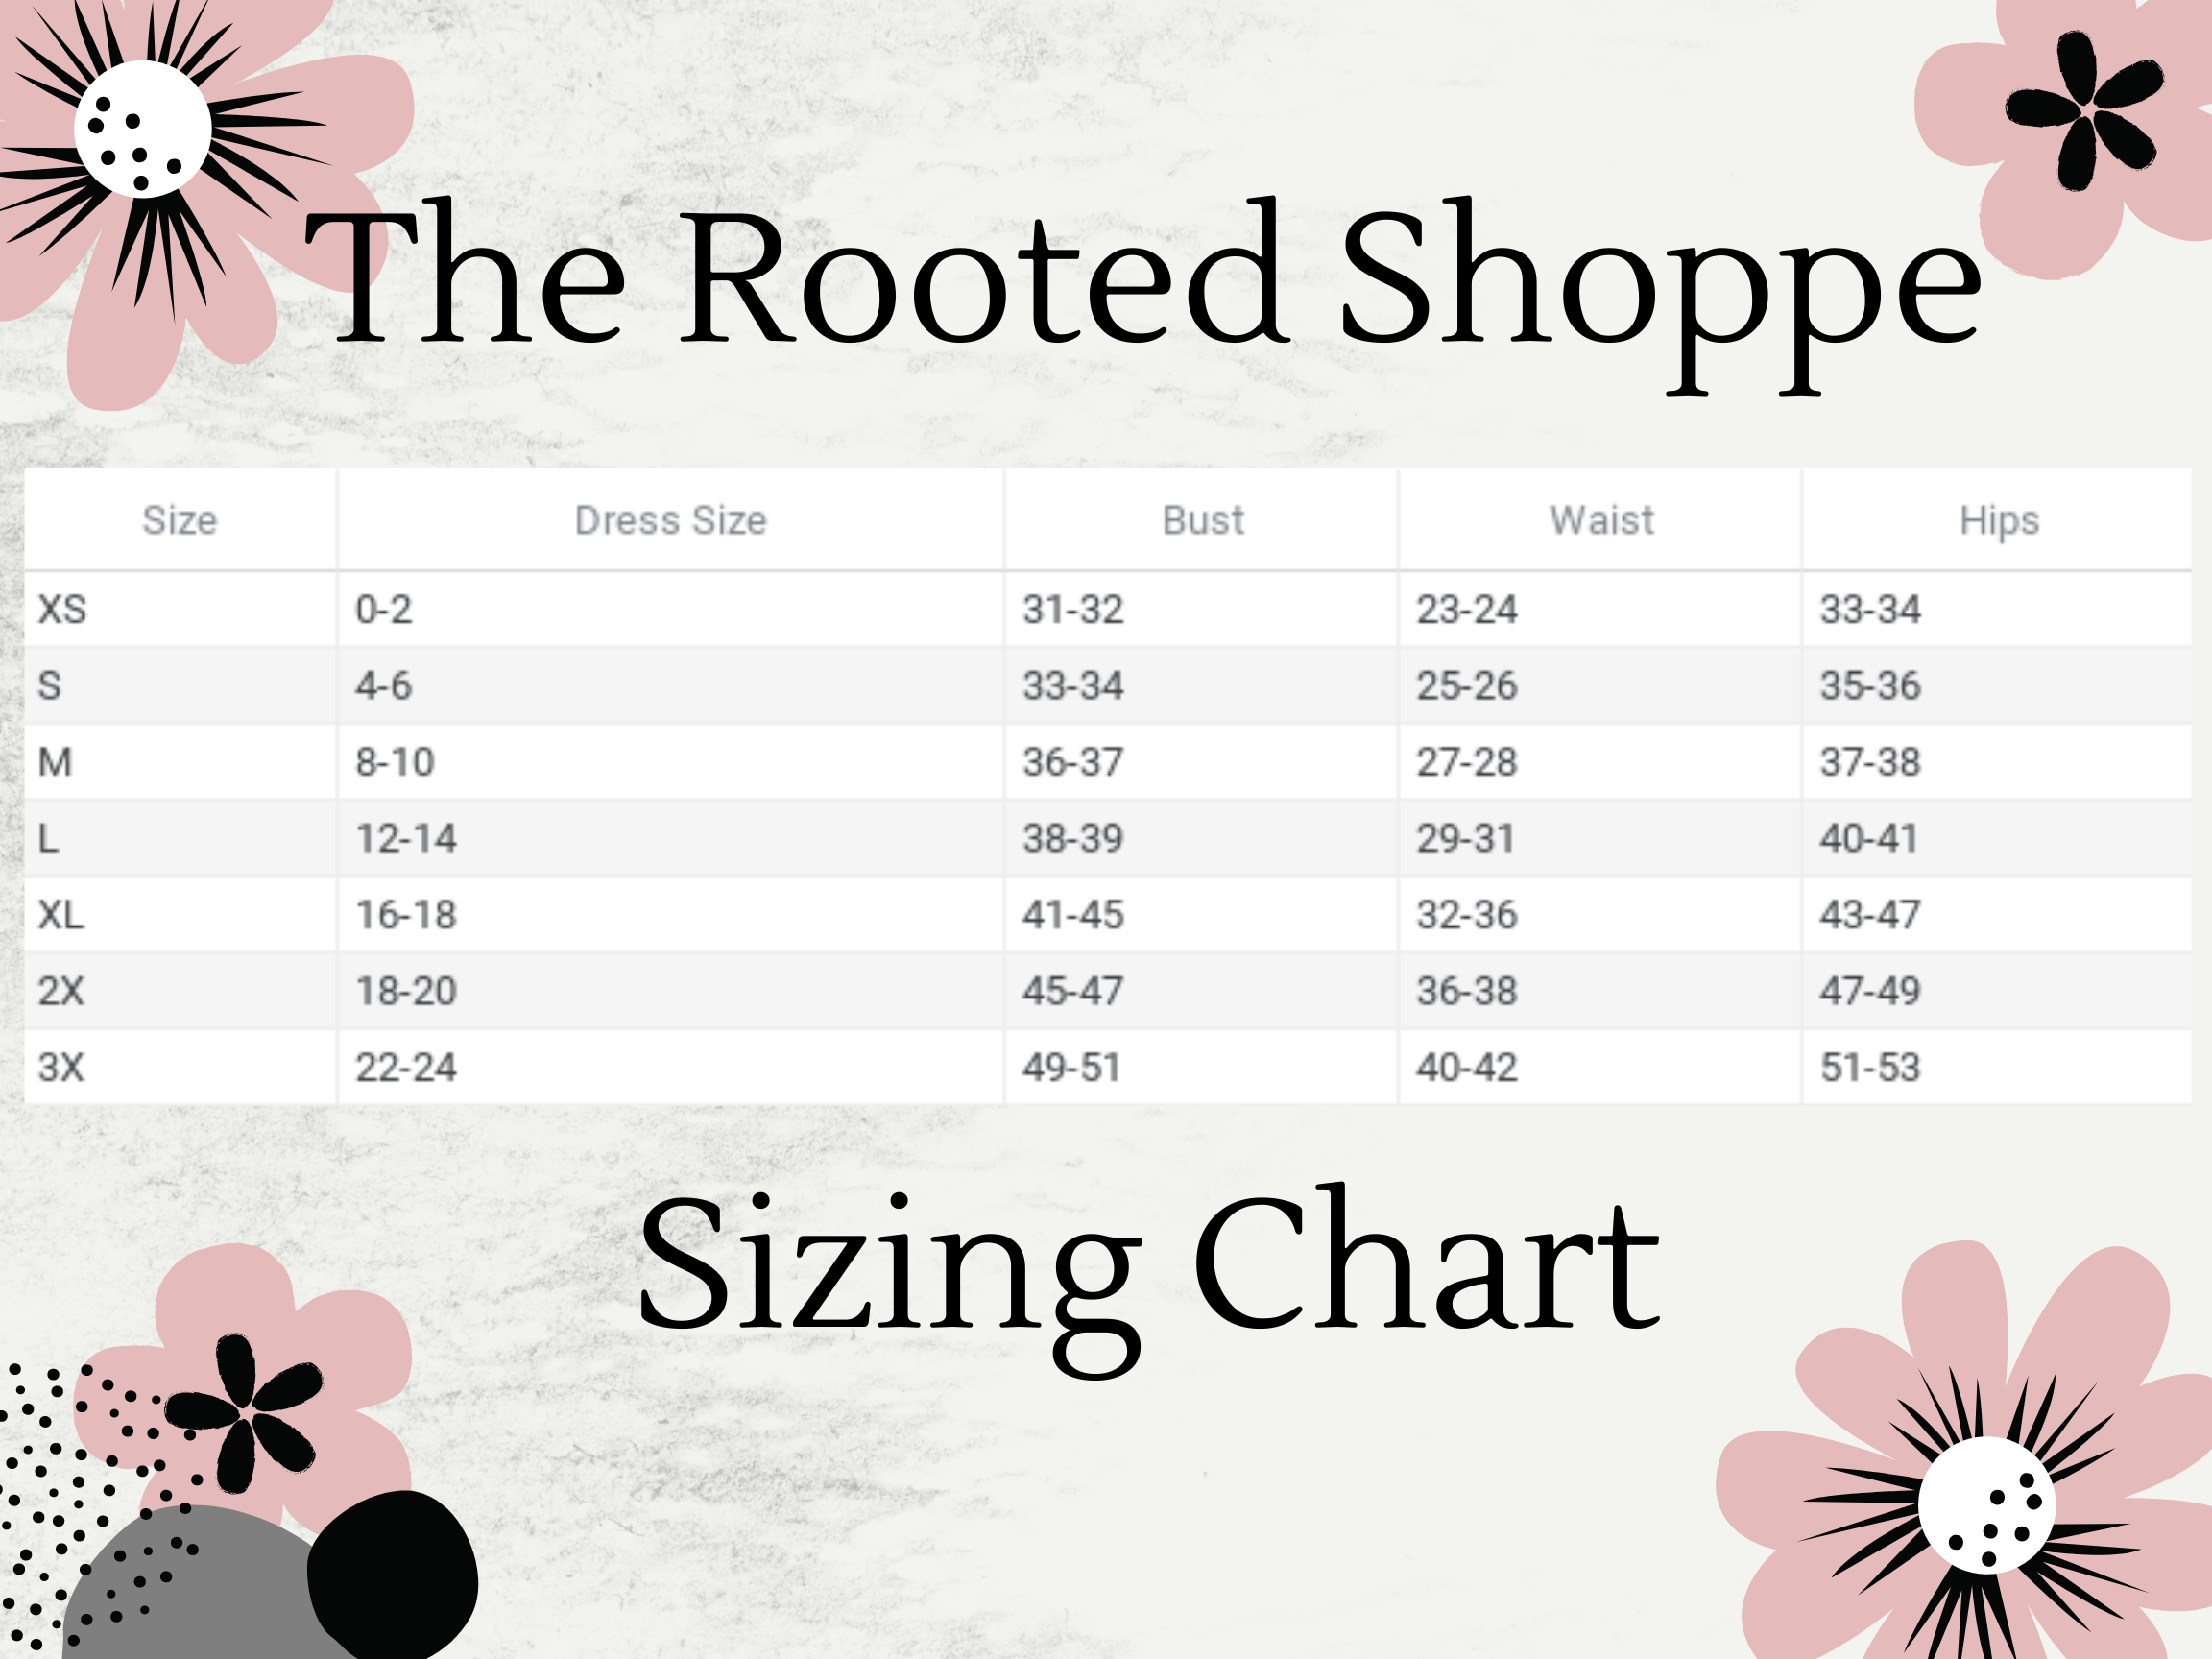 The Rooted Shoppe Size Chart